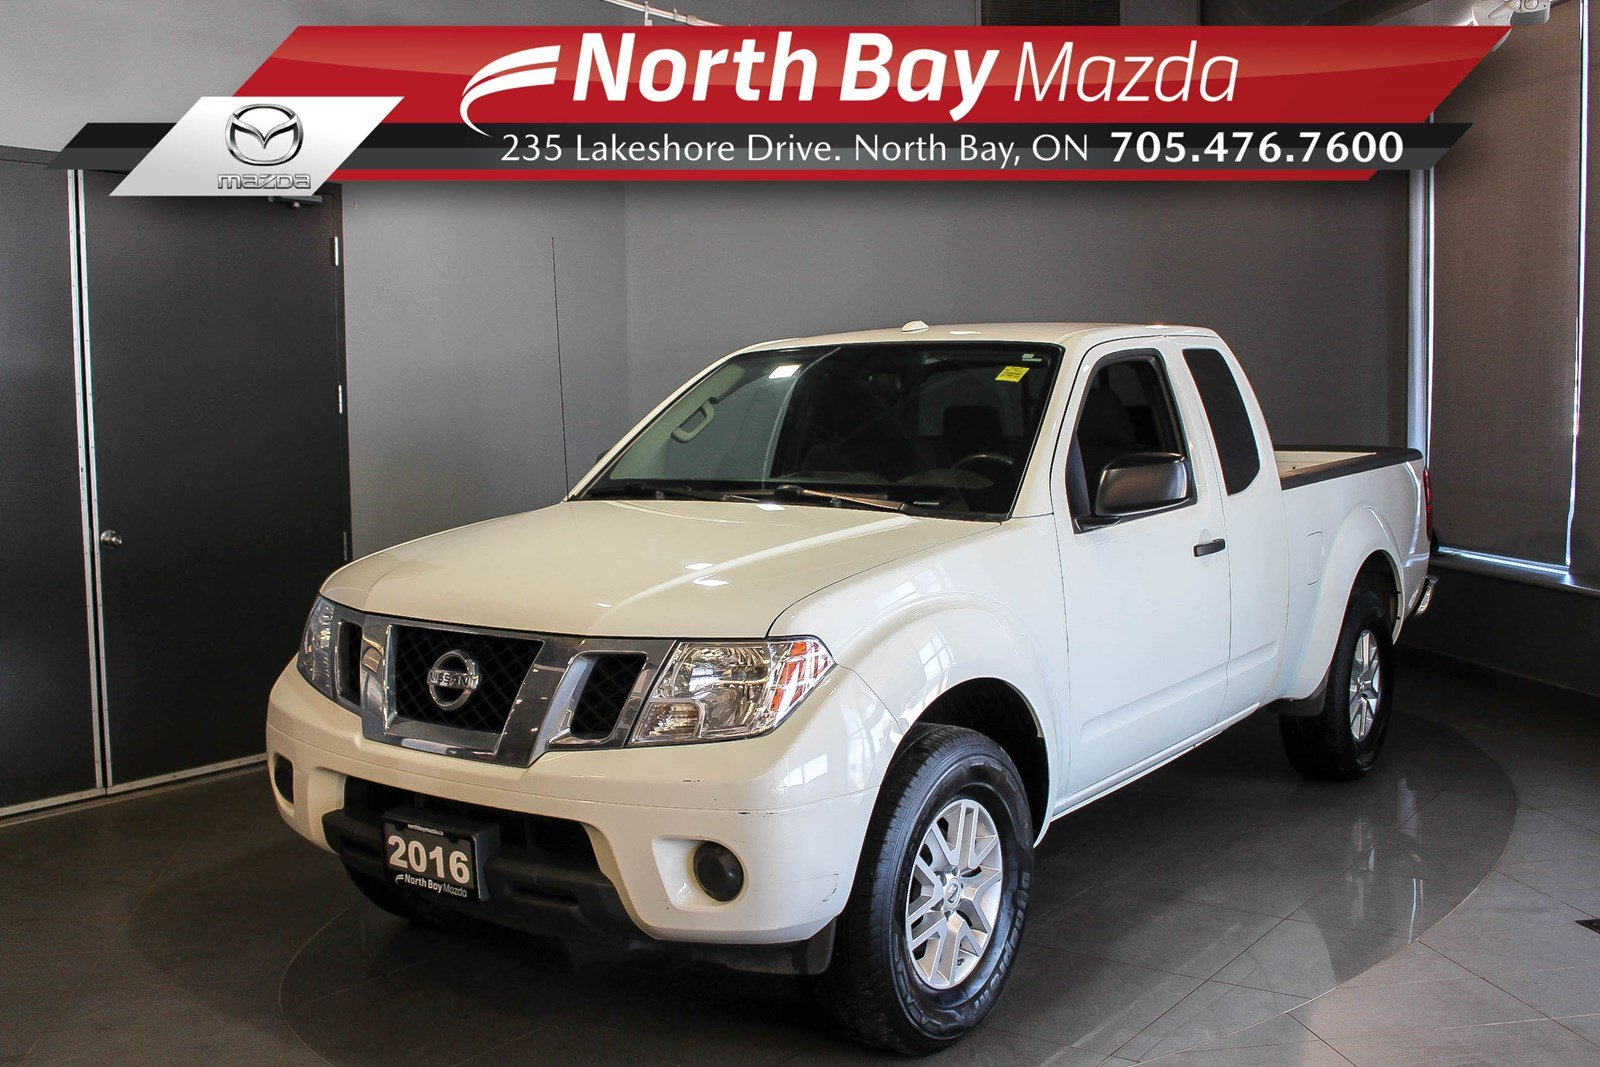 Pre-Owned 2016 Nissan Frontier SV 4X4 - Virtual Tour & Curbside Delivery Available!